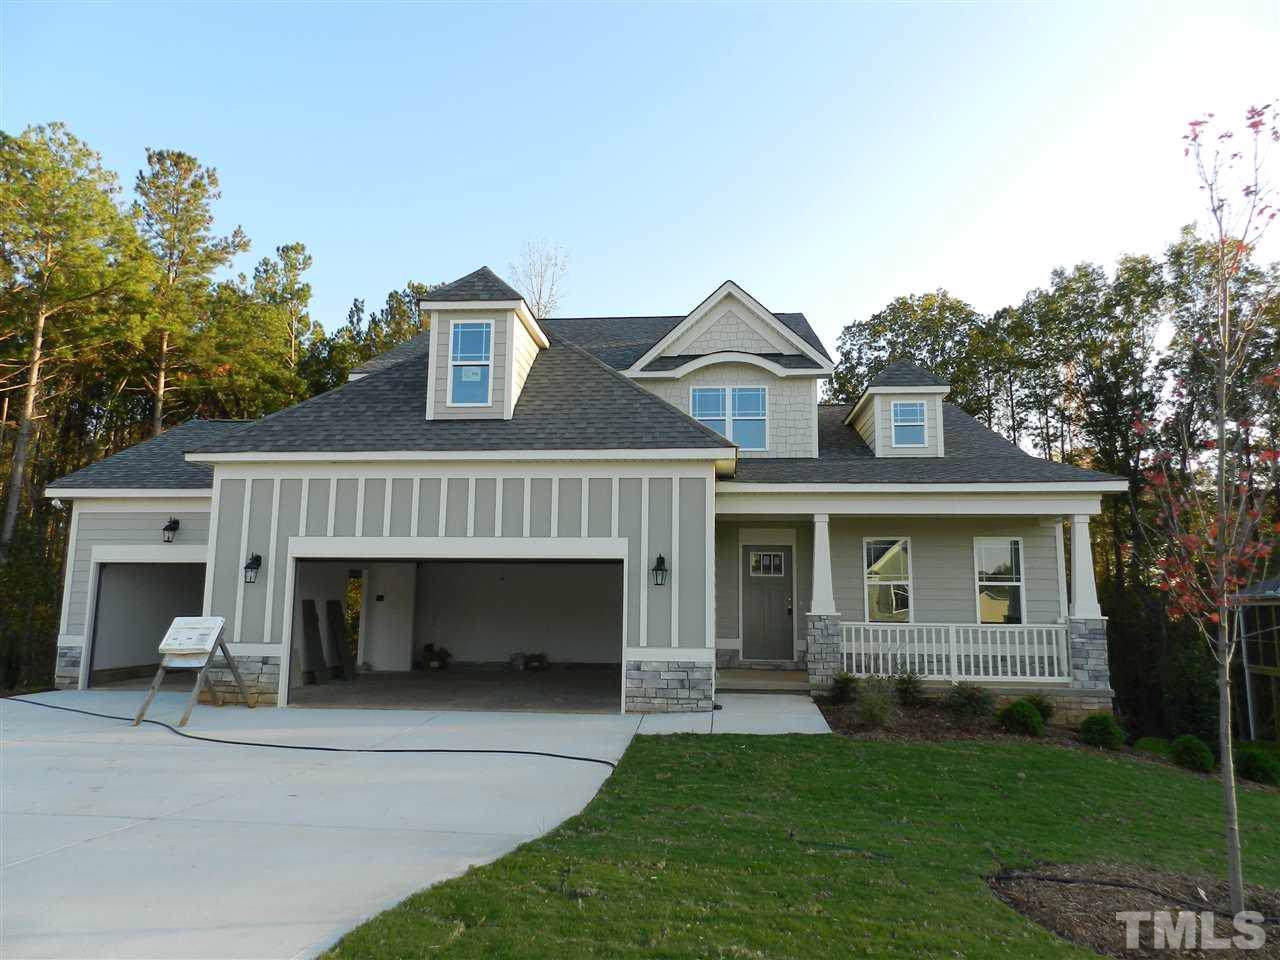 966 Airedale Trail - Photo 1